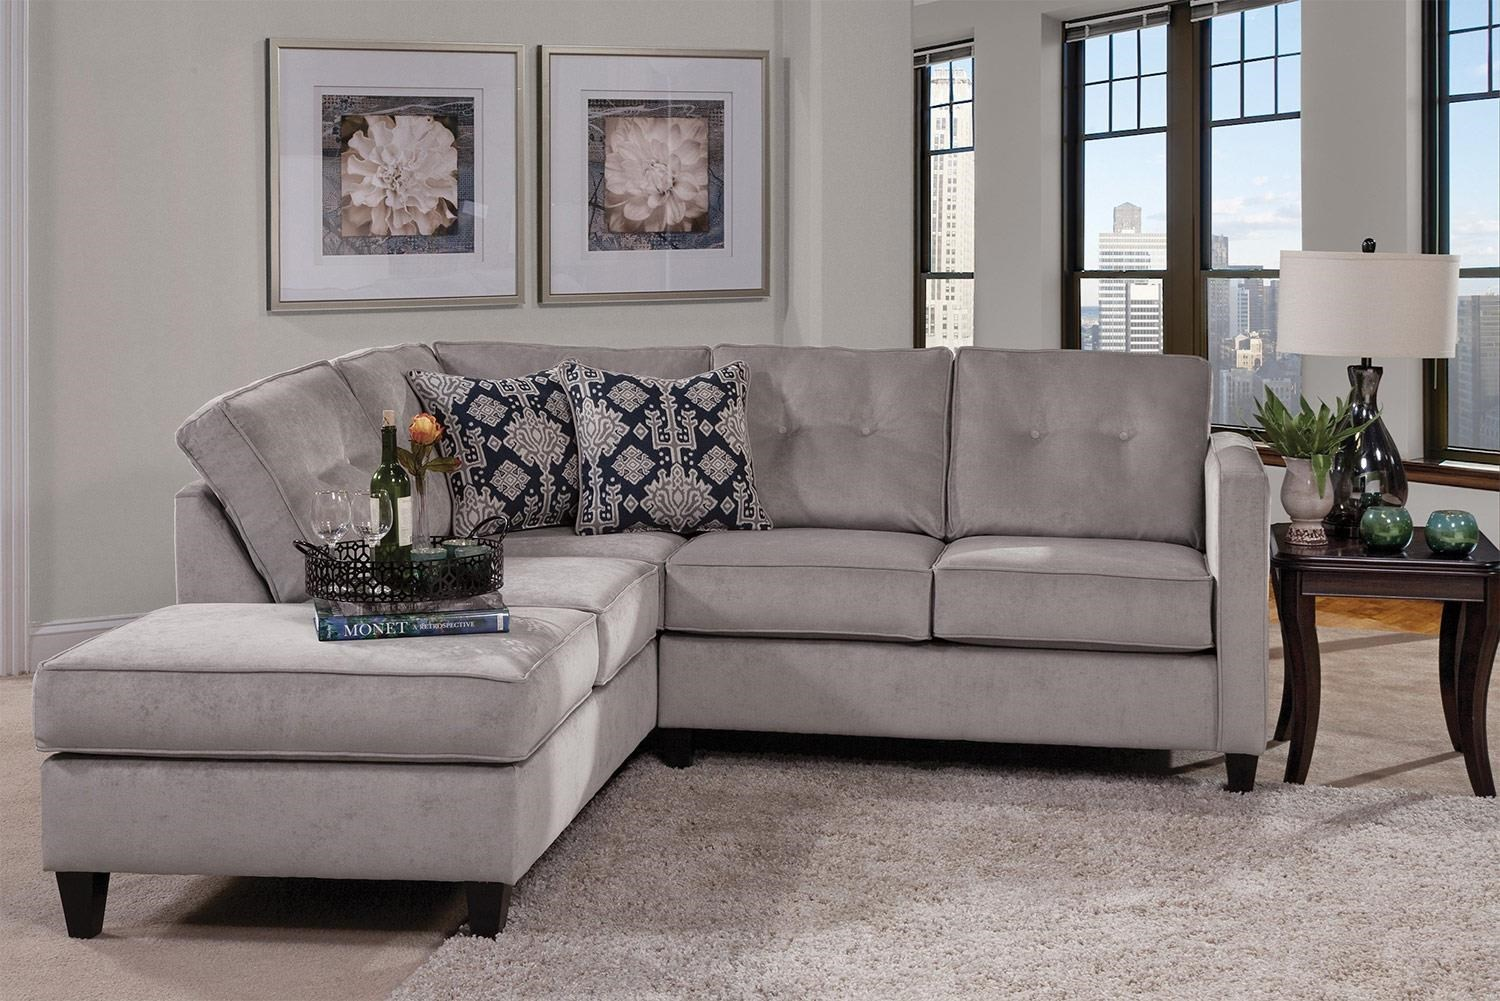 Serta Upholstery Mali Contemporary Sectional with Chaise Lounge  sc 1 st  Rotmans : rotmans sectionals - Sectionals, Sofas & Couches